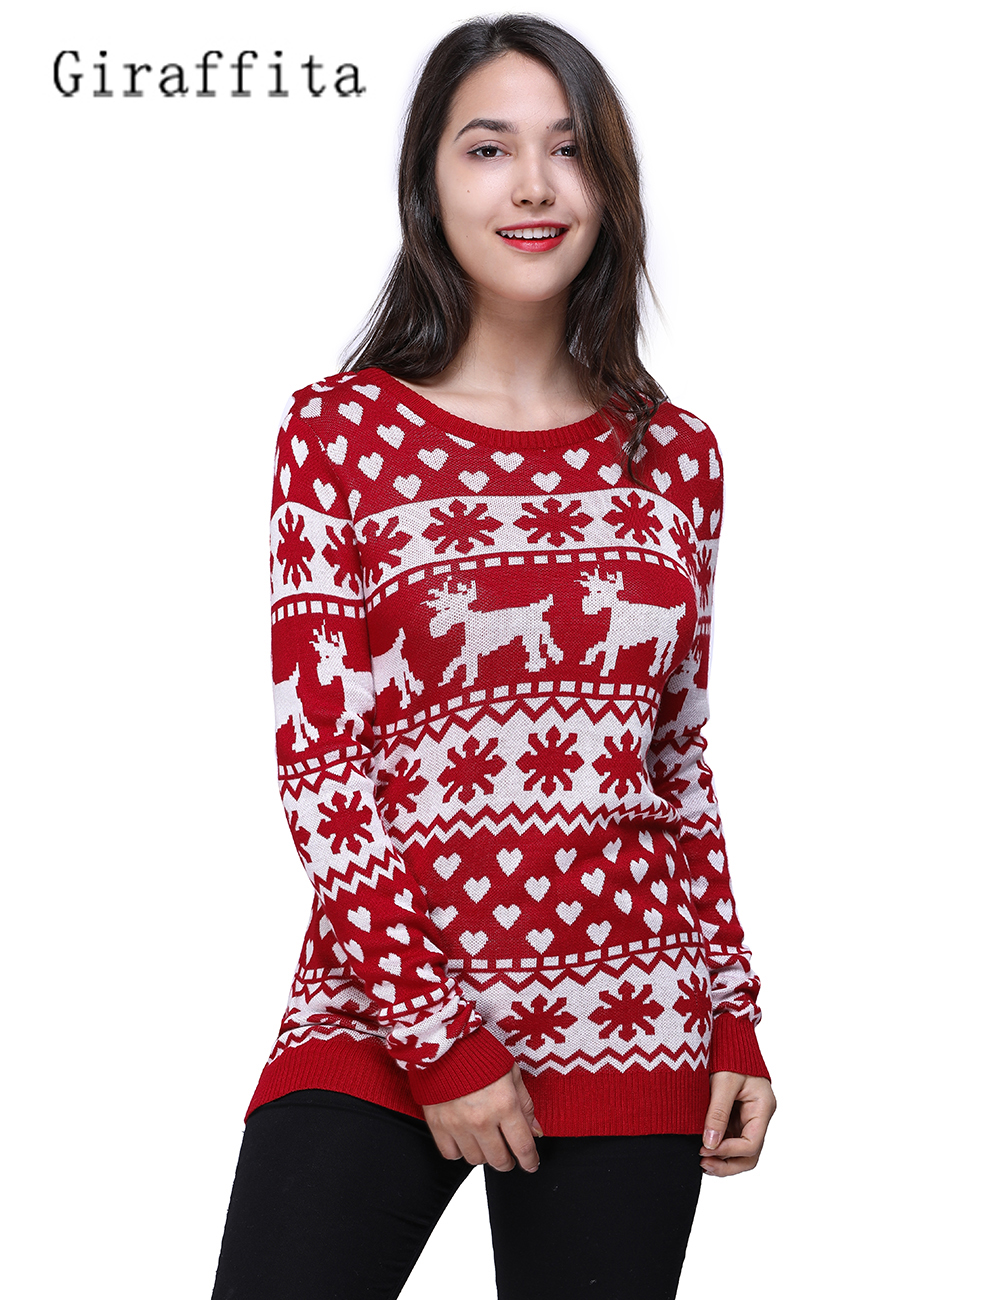 Giraffita Women Snow Christmas Clothes Sweater Cotton Red Long Sleeve Pullovers Sweater